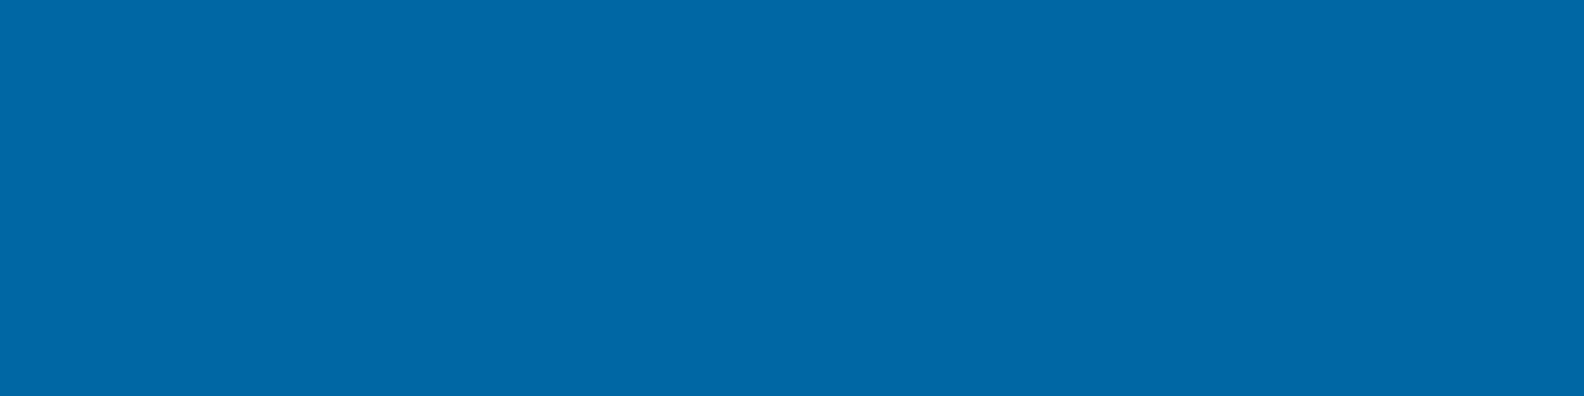 1584x396 Sapphire Blue Solid Color Background